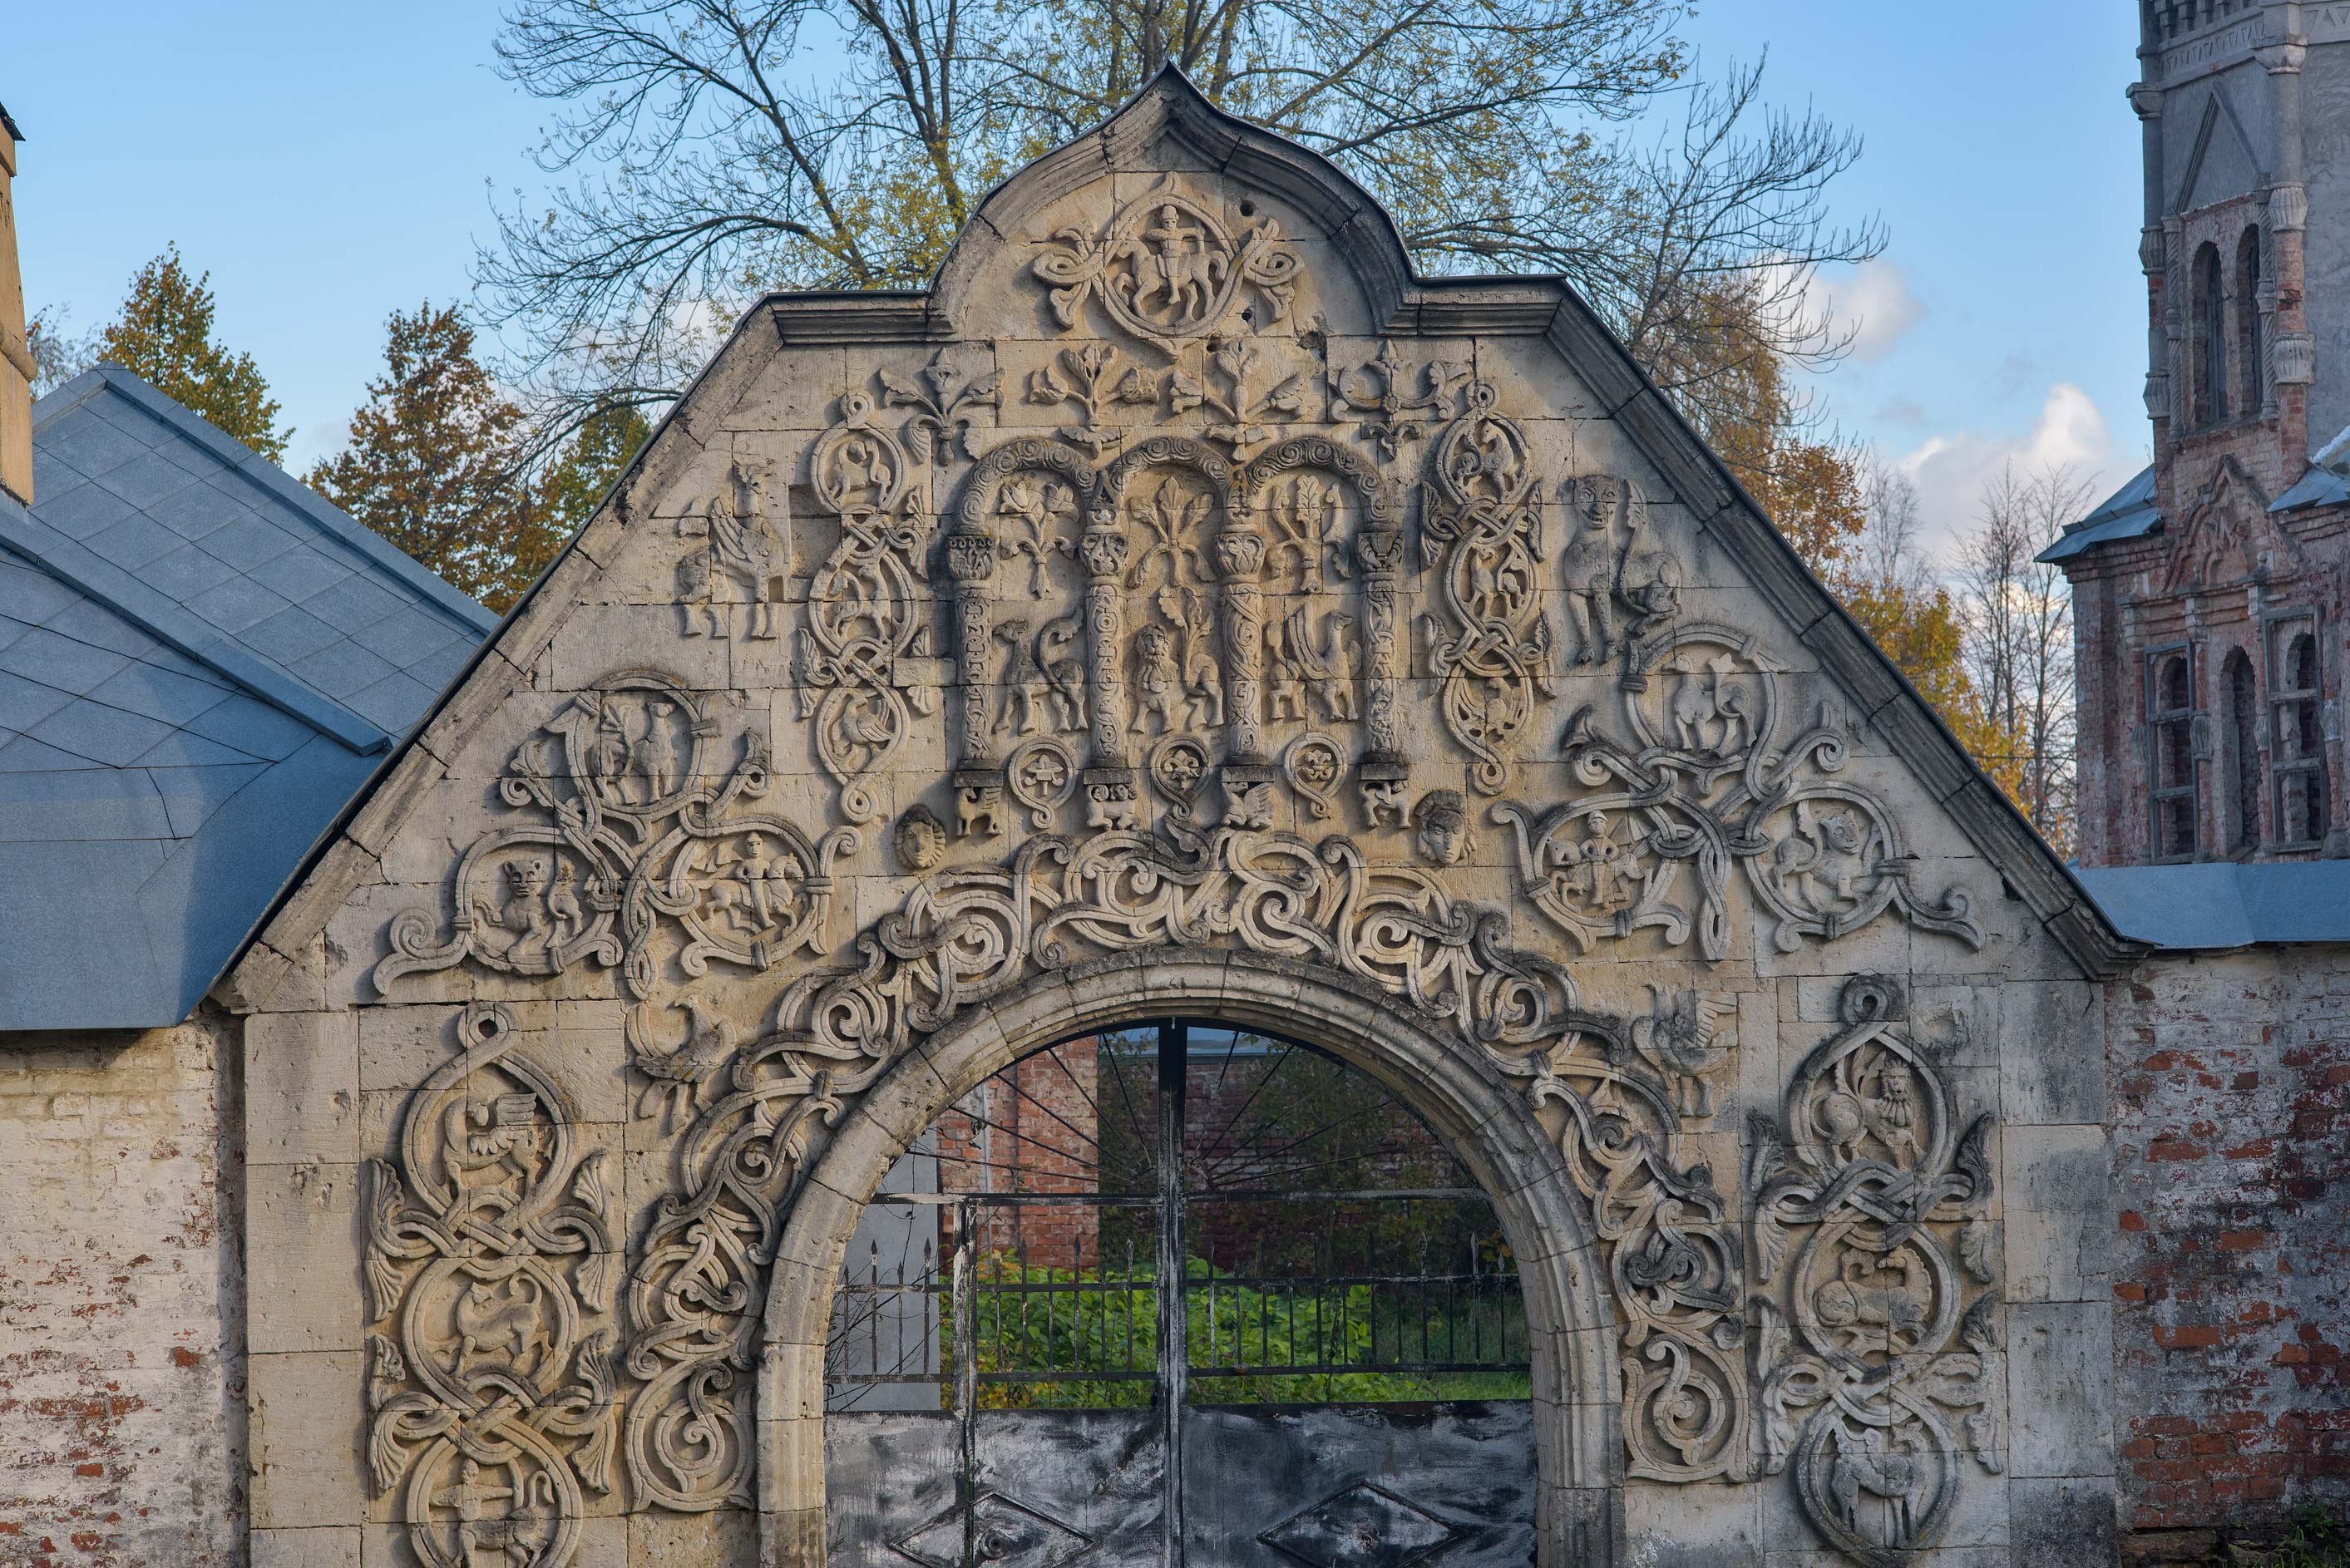 White Stone Gate of Fiodorovsky Gorodok. Pushkin...south from St.Petersburg, Russia